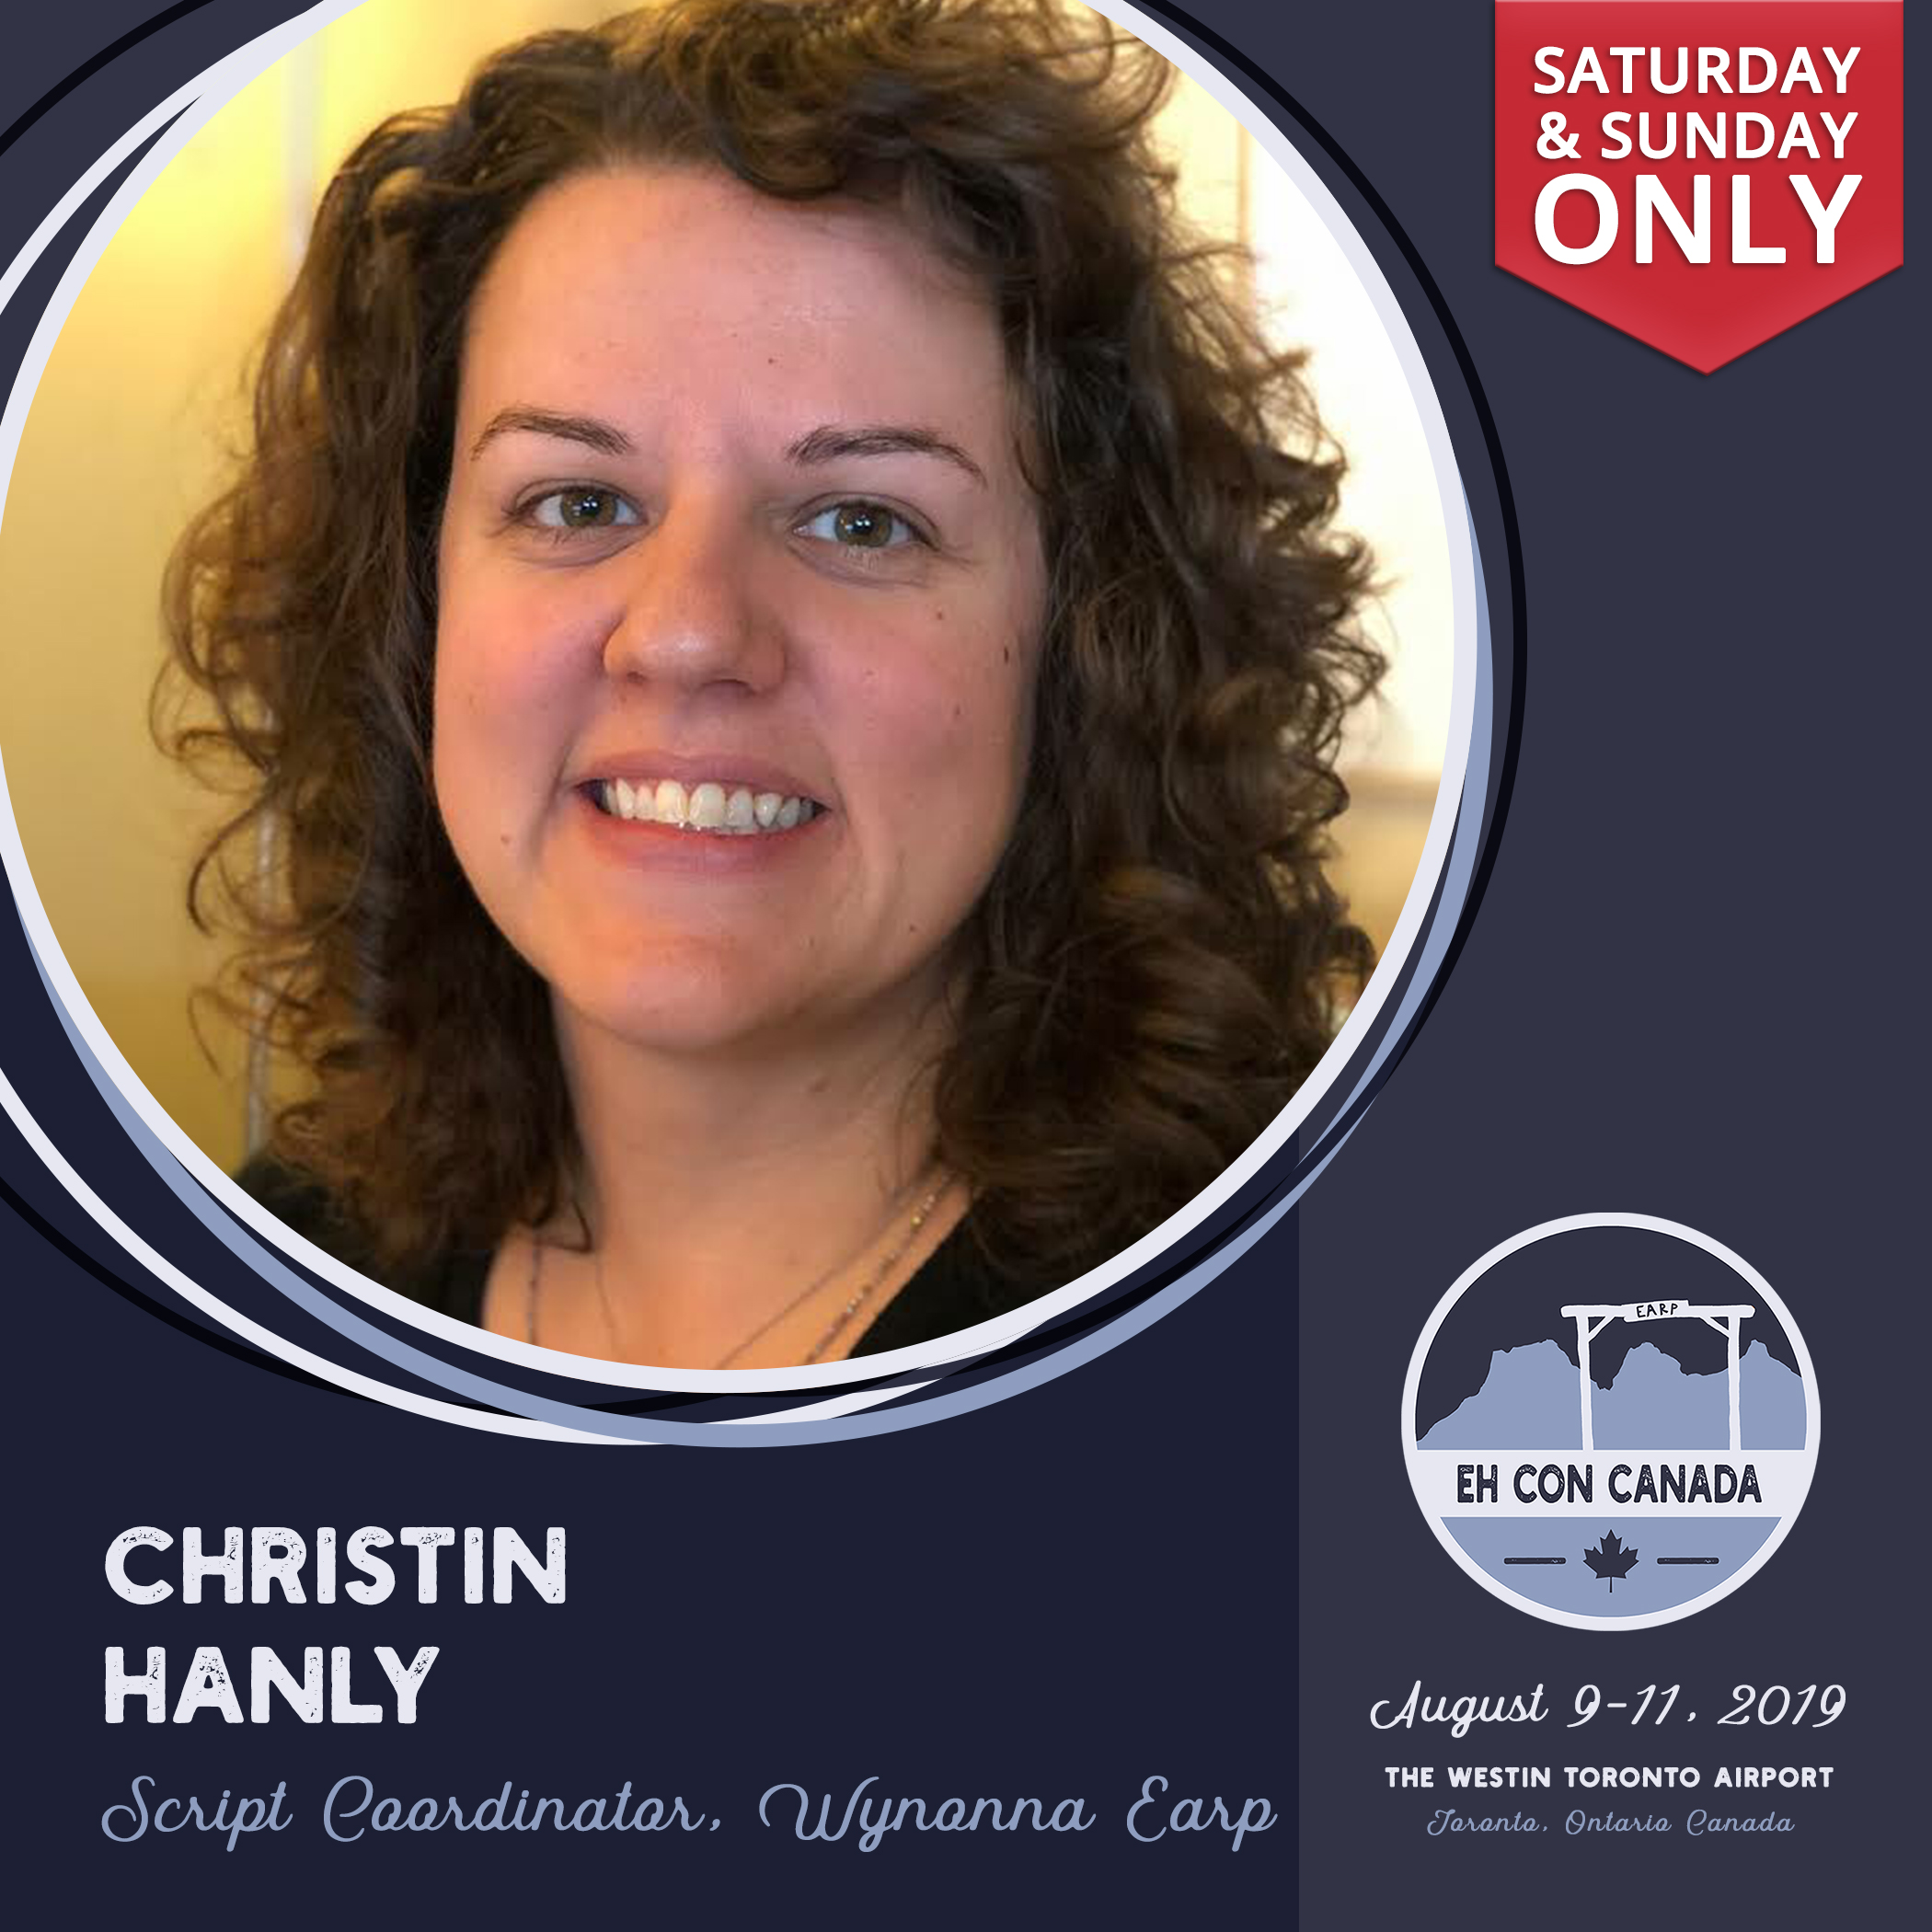 Christin Hanly